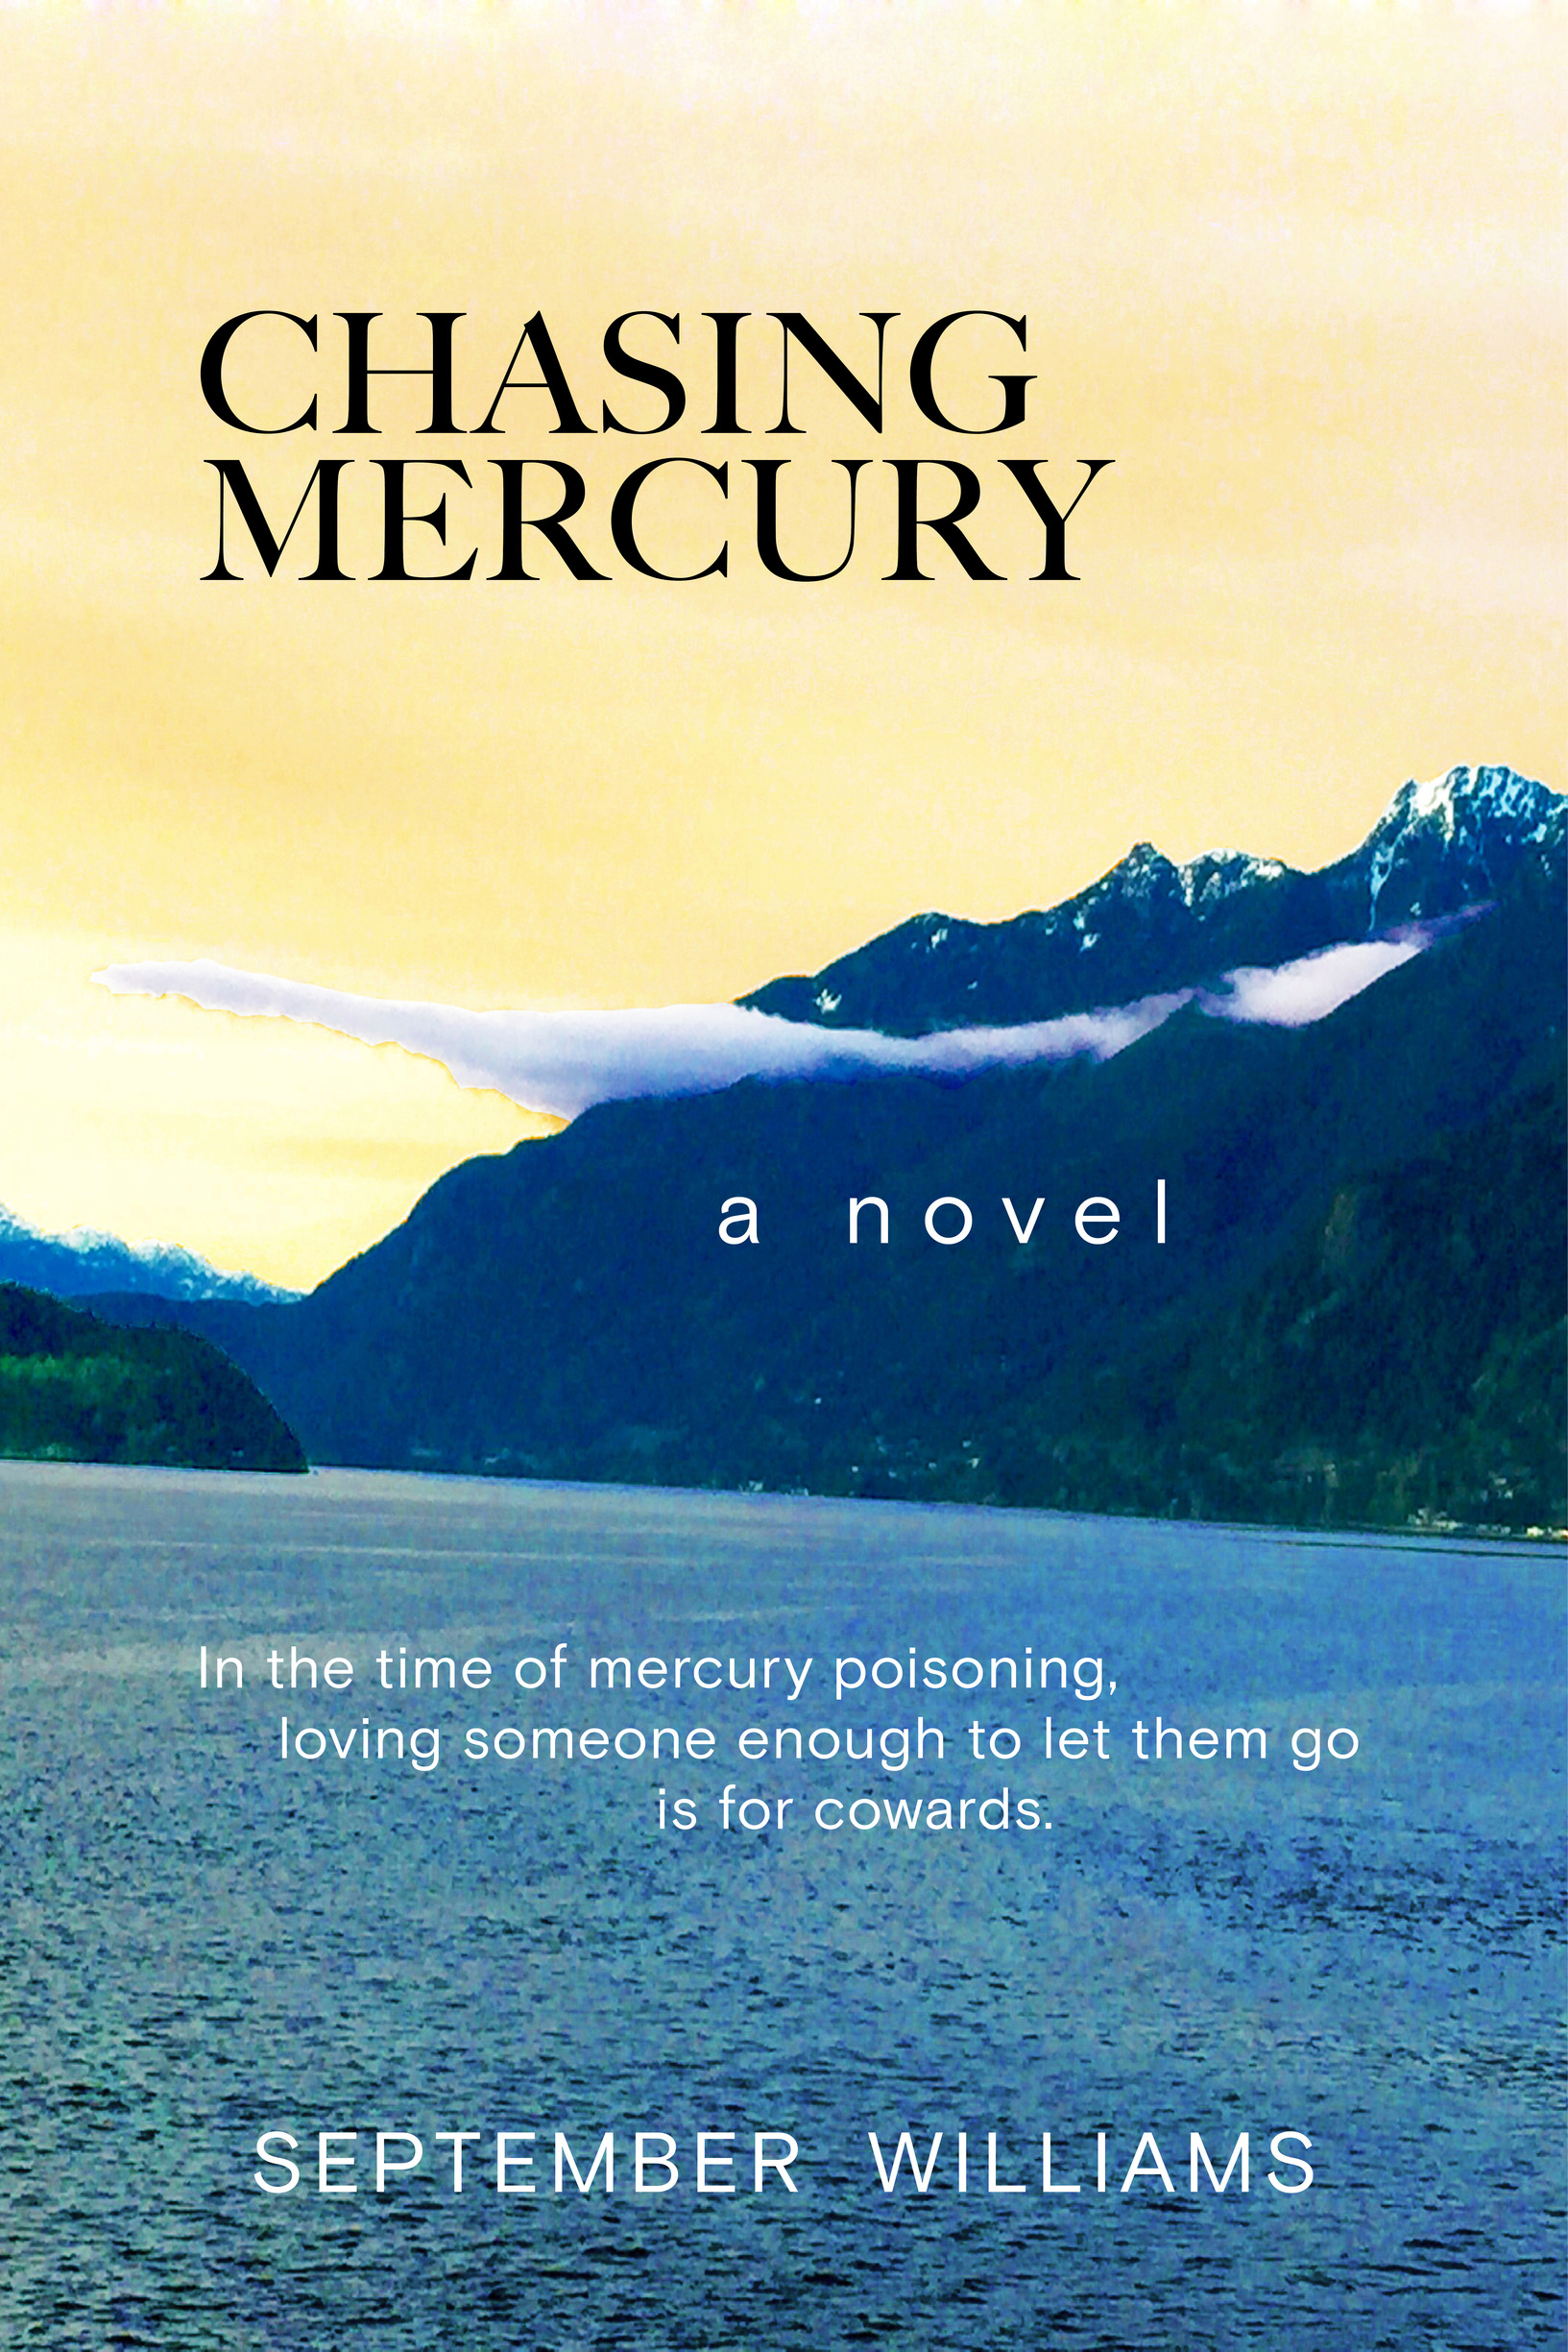 JPEG Pronoun_Chasing Mercury_September Williams_Cover.jpg